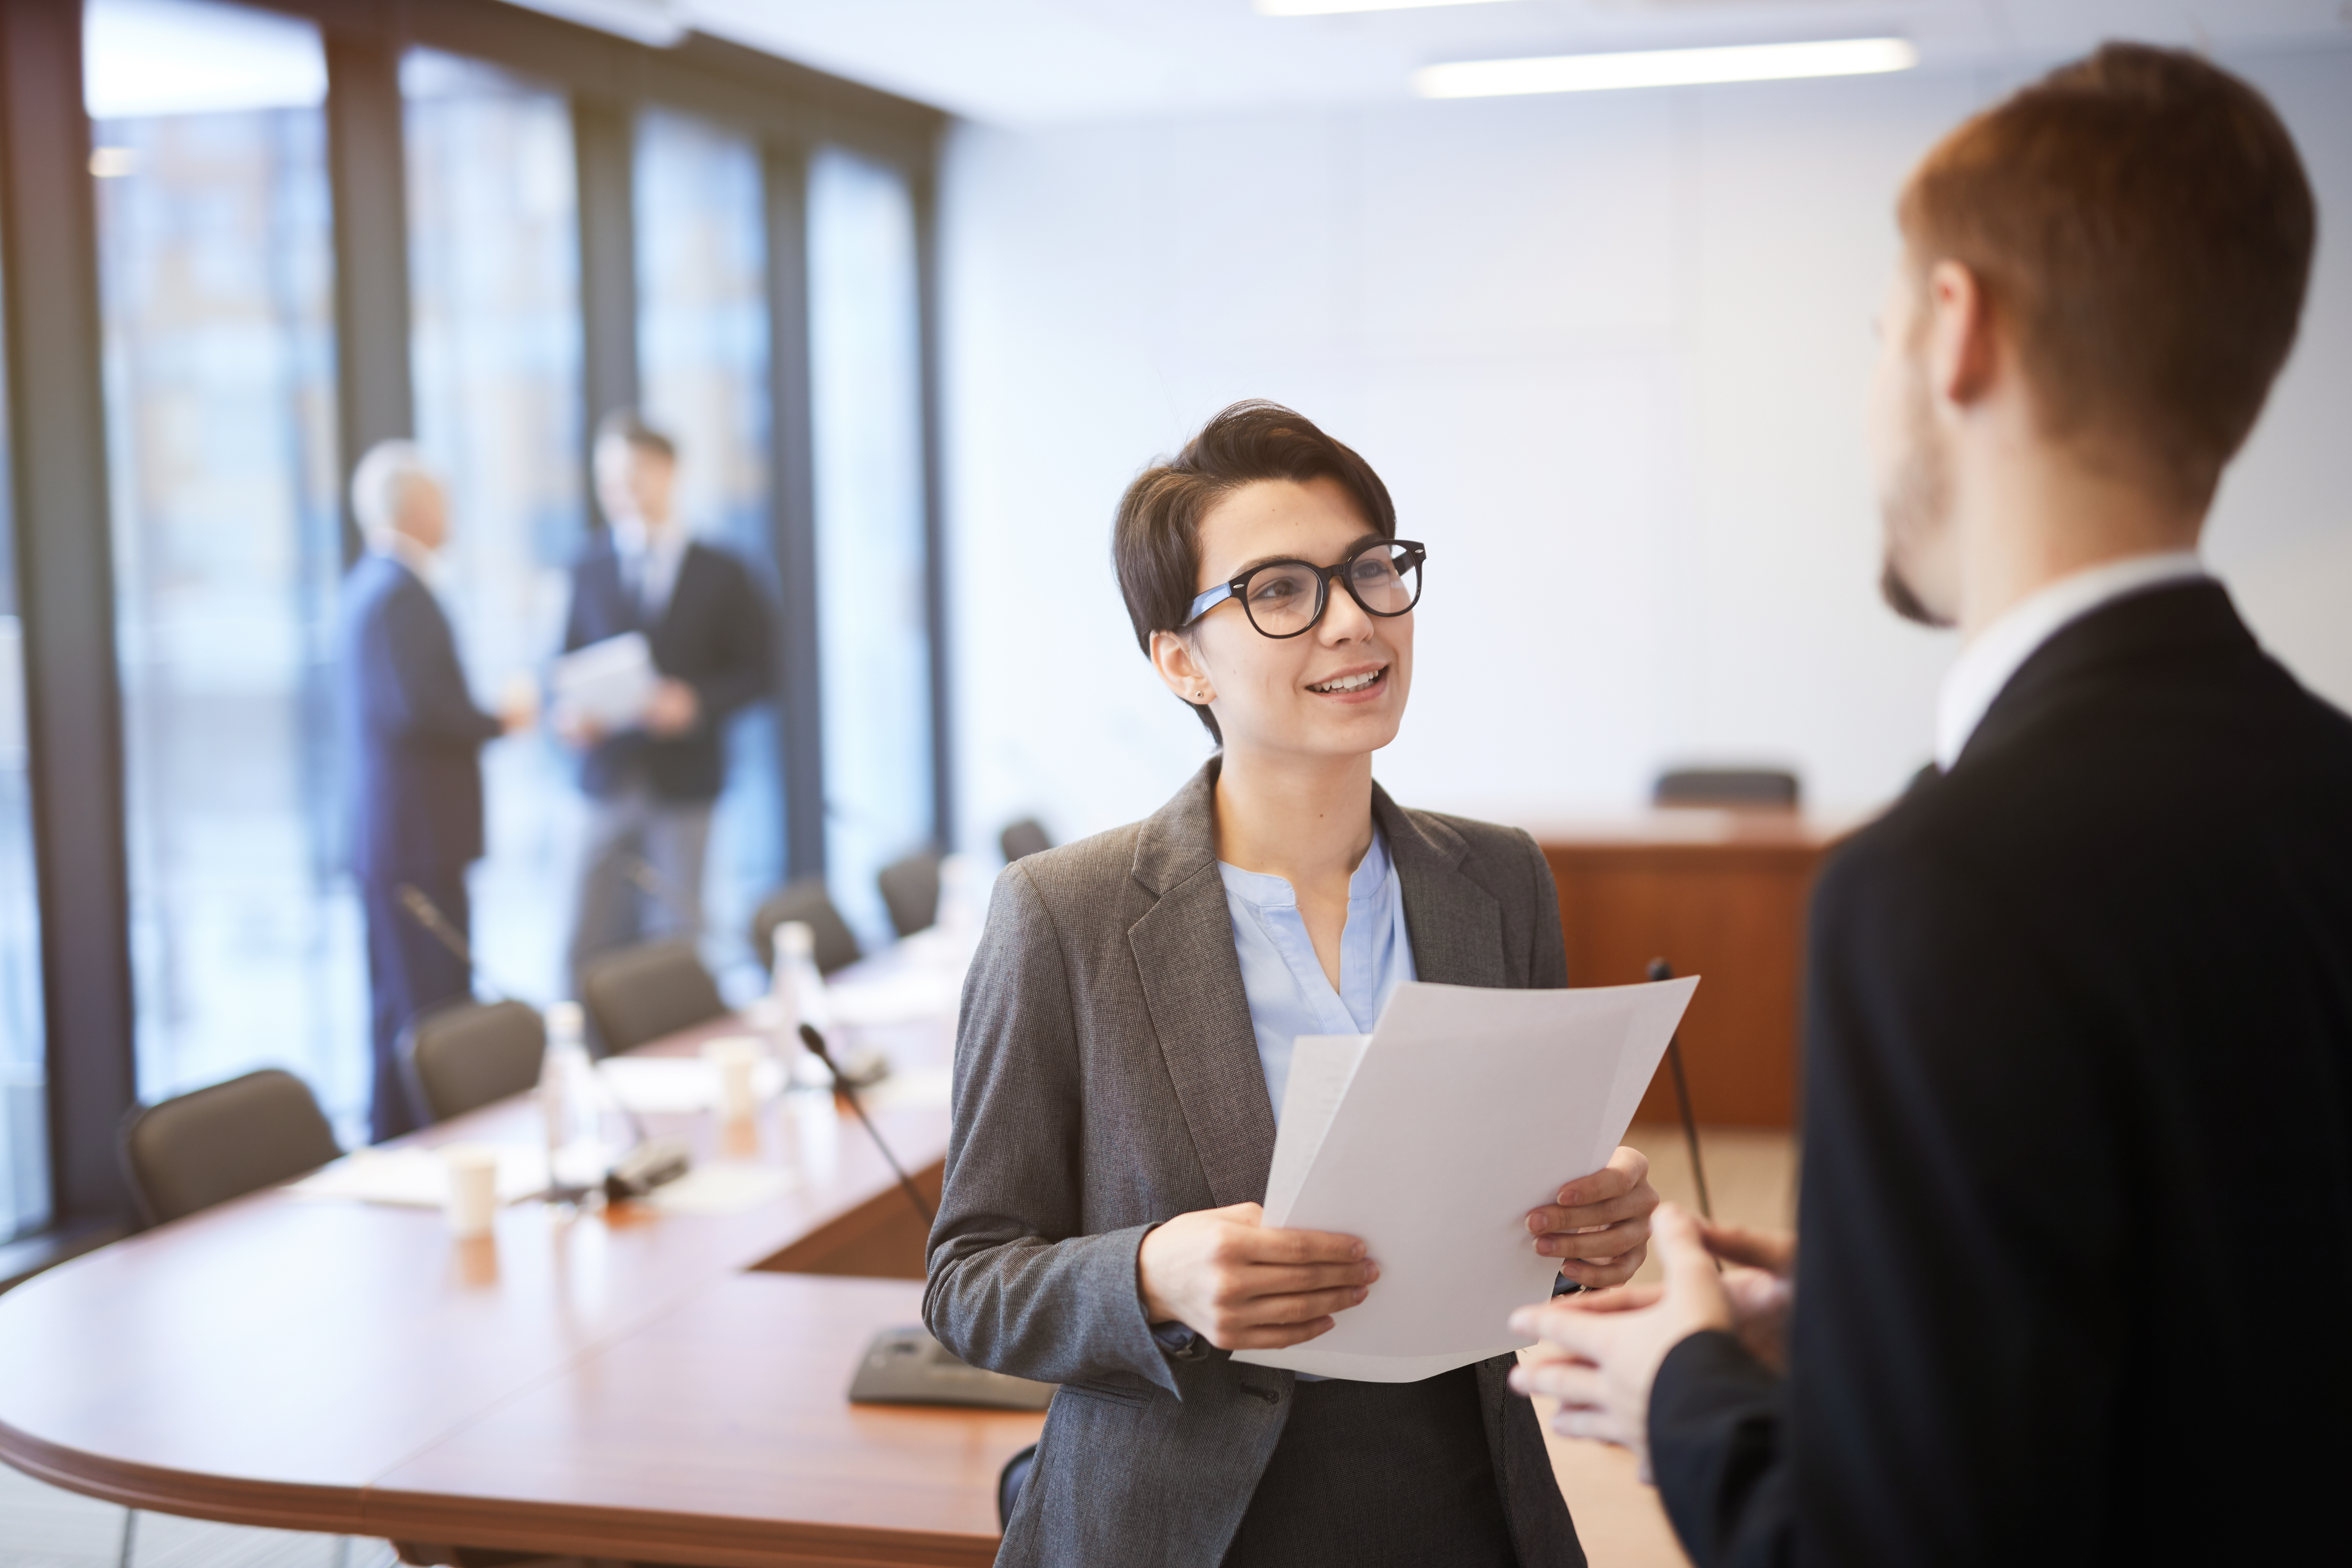 young businesswoman talking to colleague in 5F32P4H - How To Avoid Computer Vision Syndrome